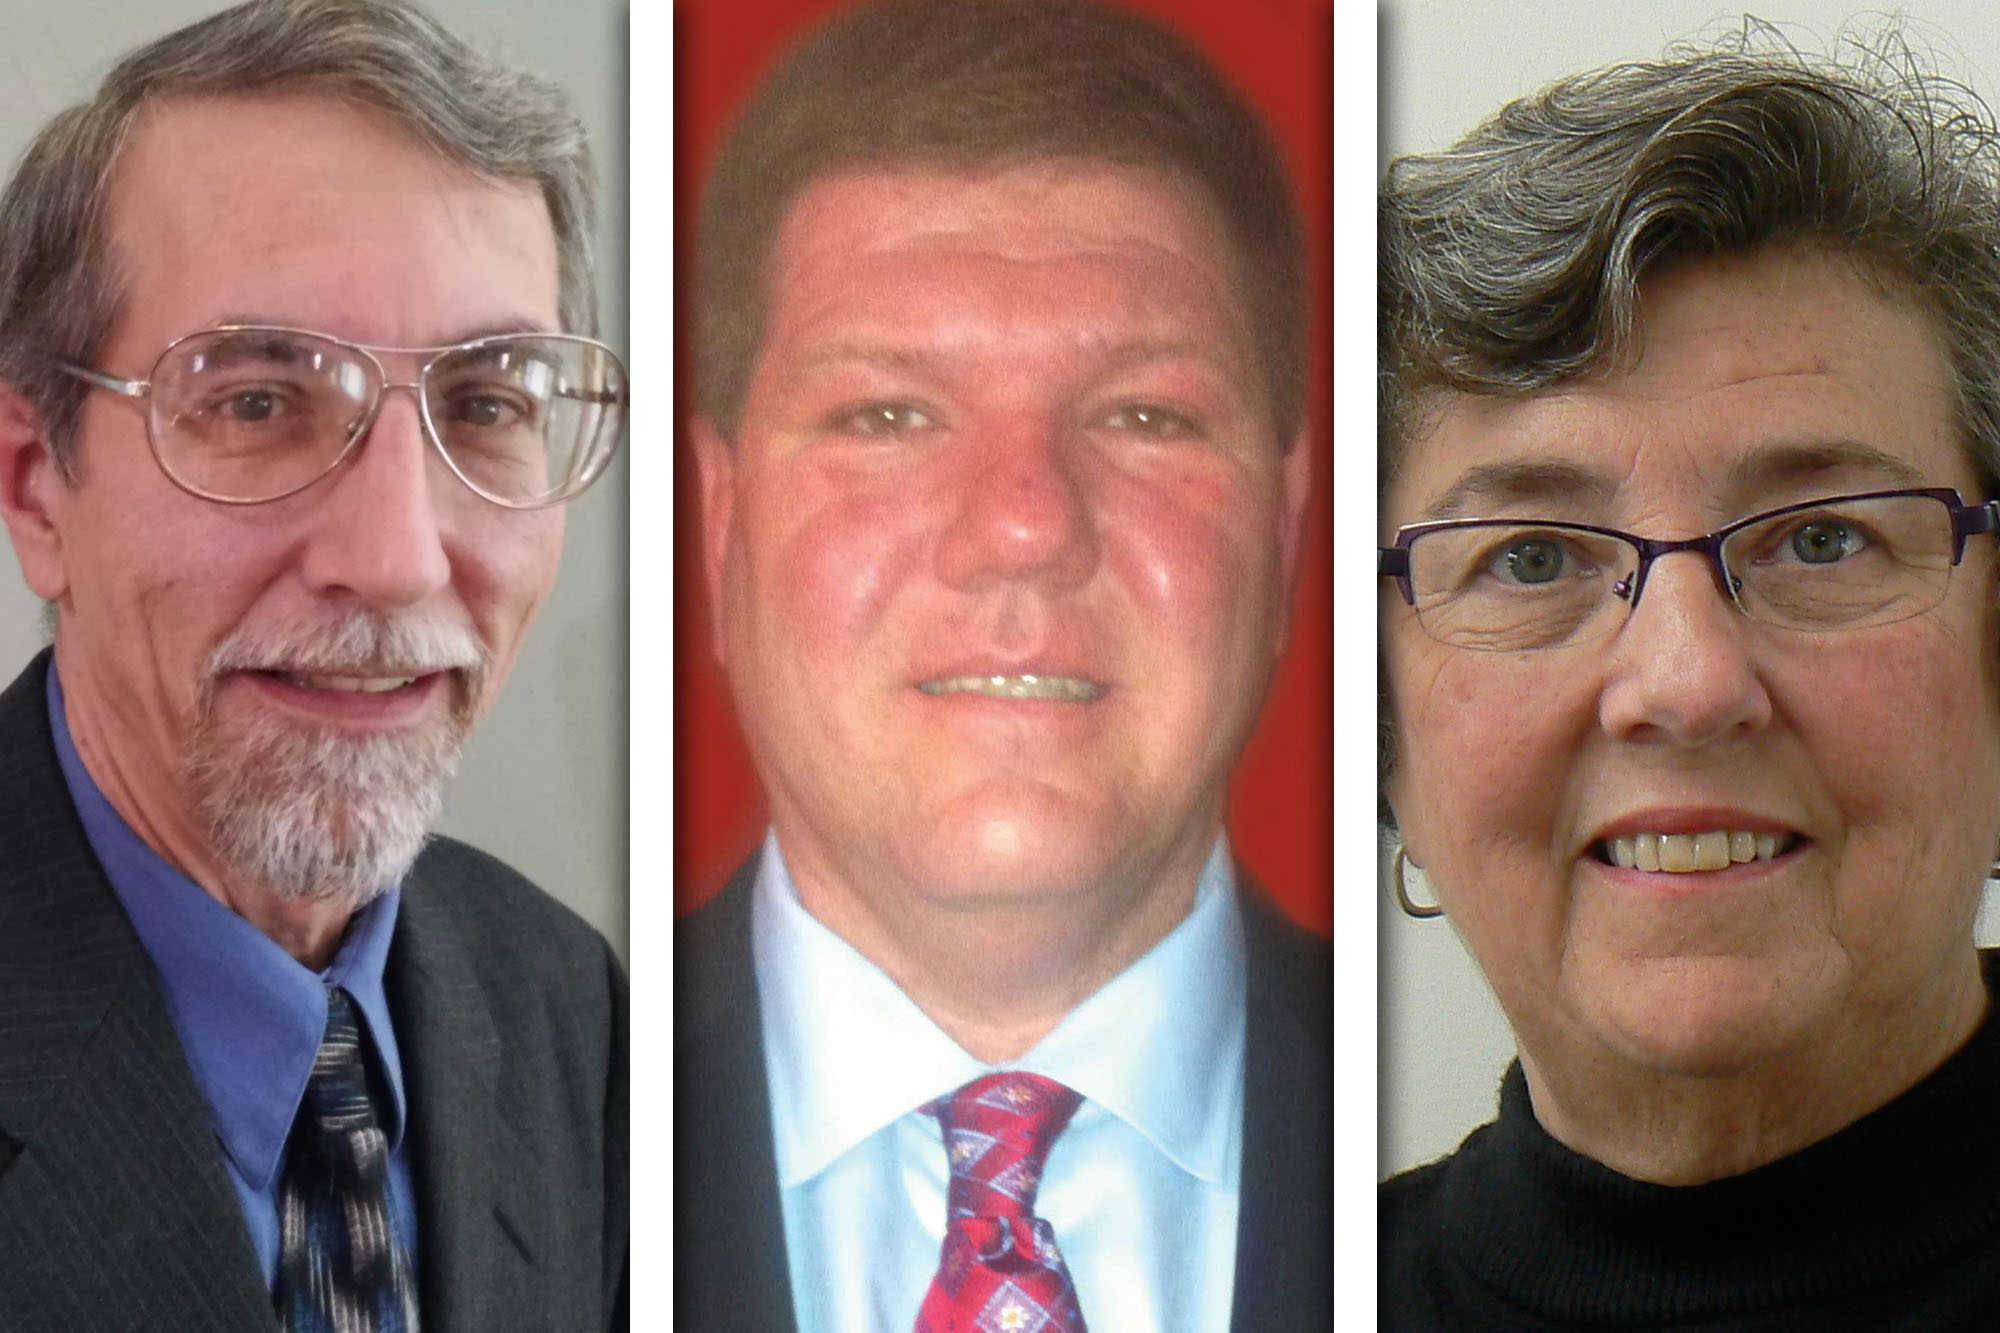 From left, Andrew Georgi, James Kearns, and Mary McCann are candidates for District 6 of the McHenry County Board.